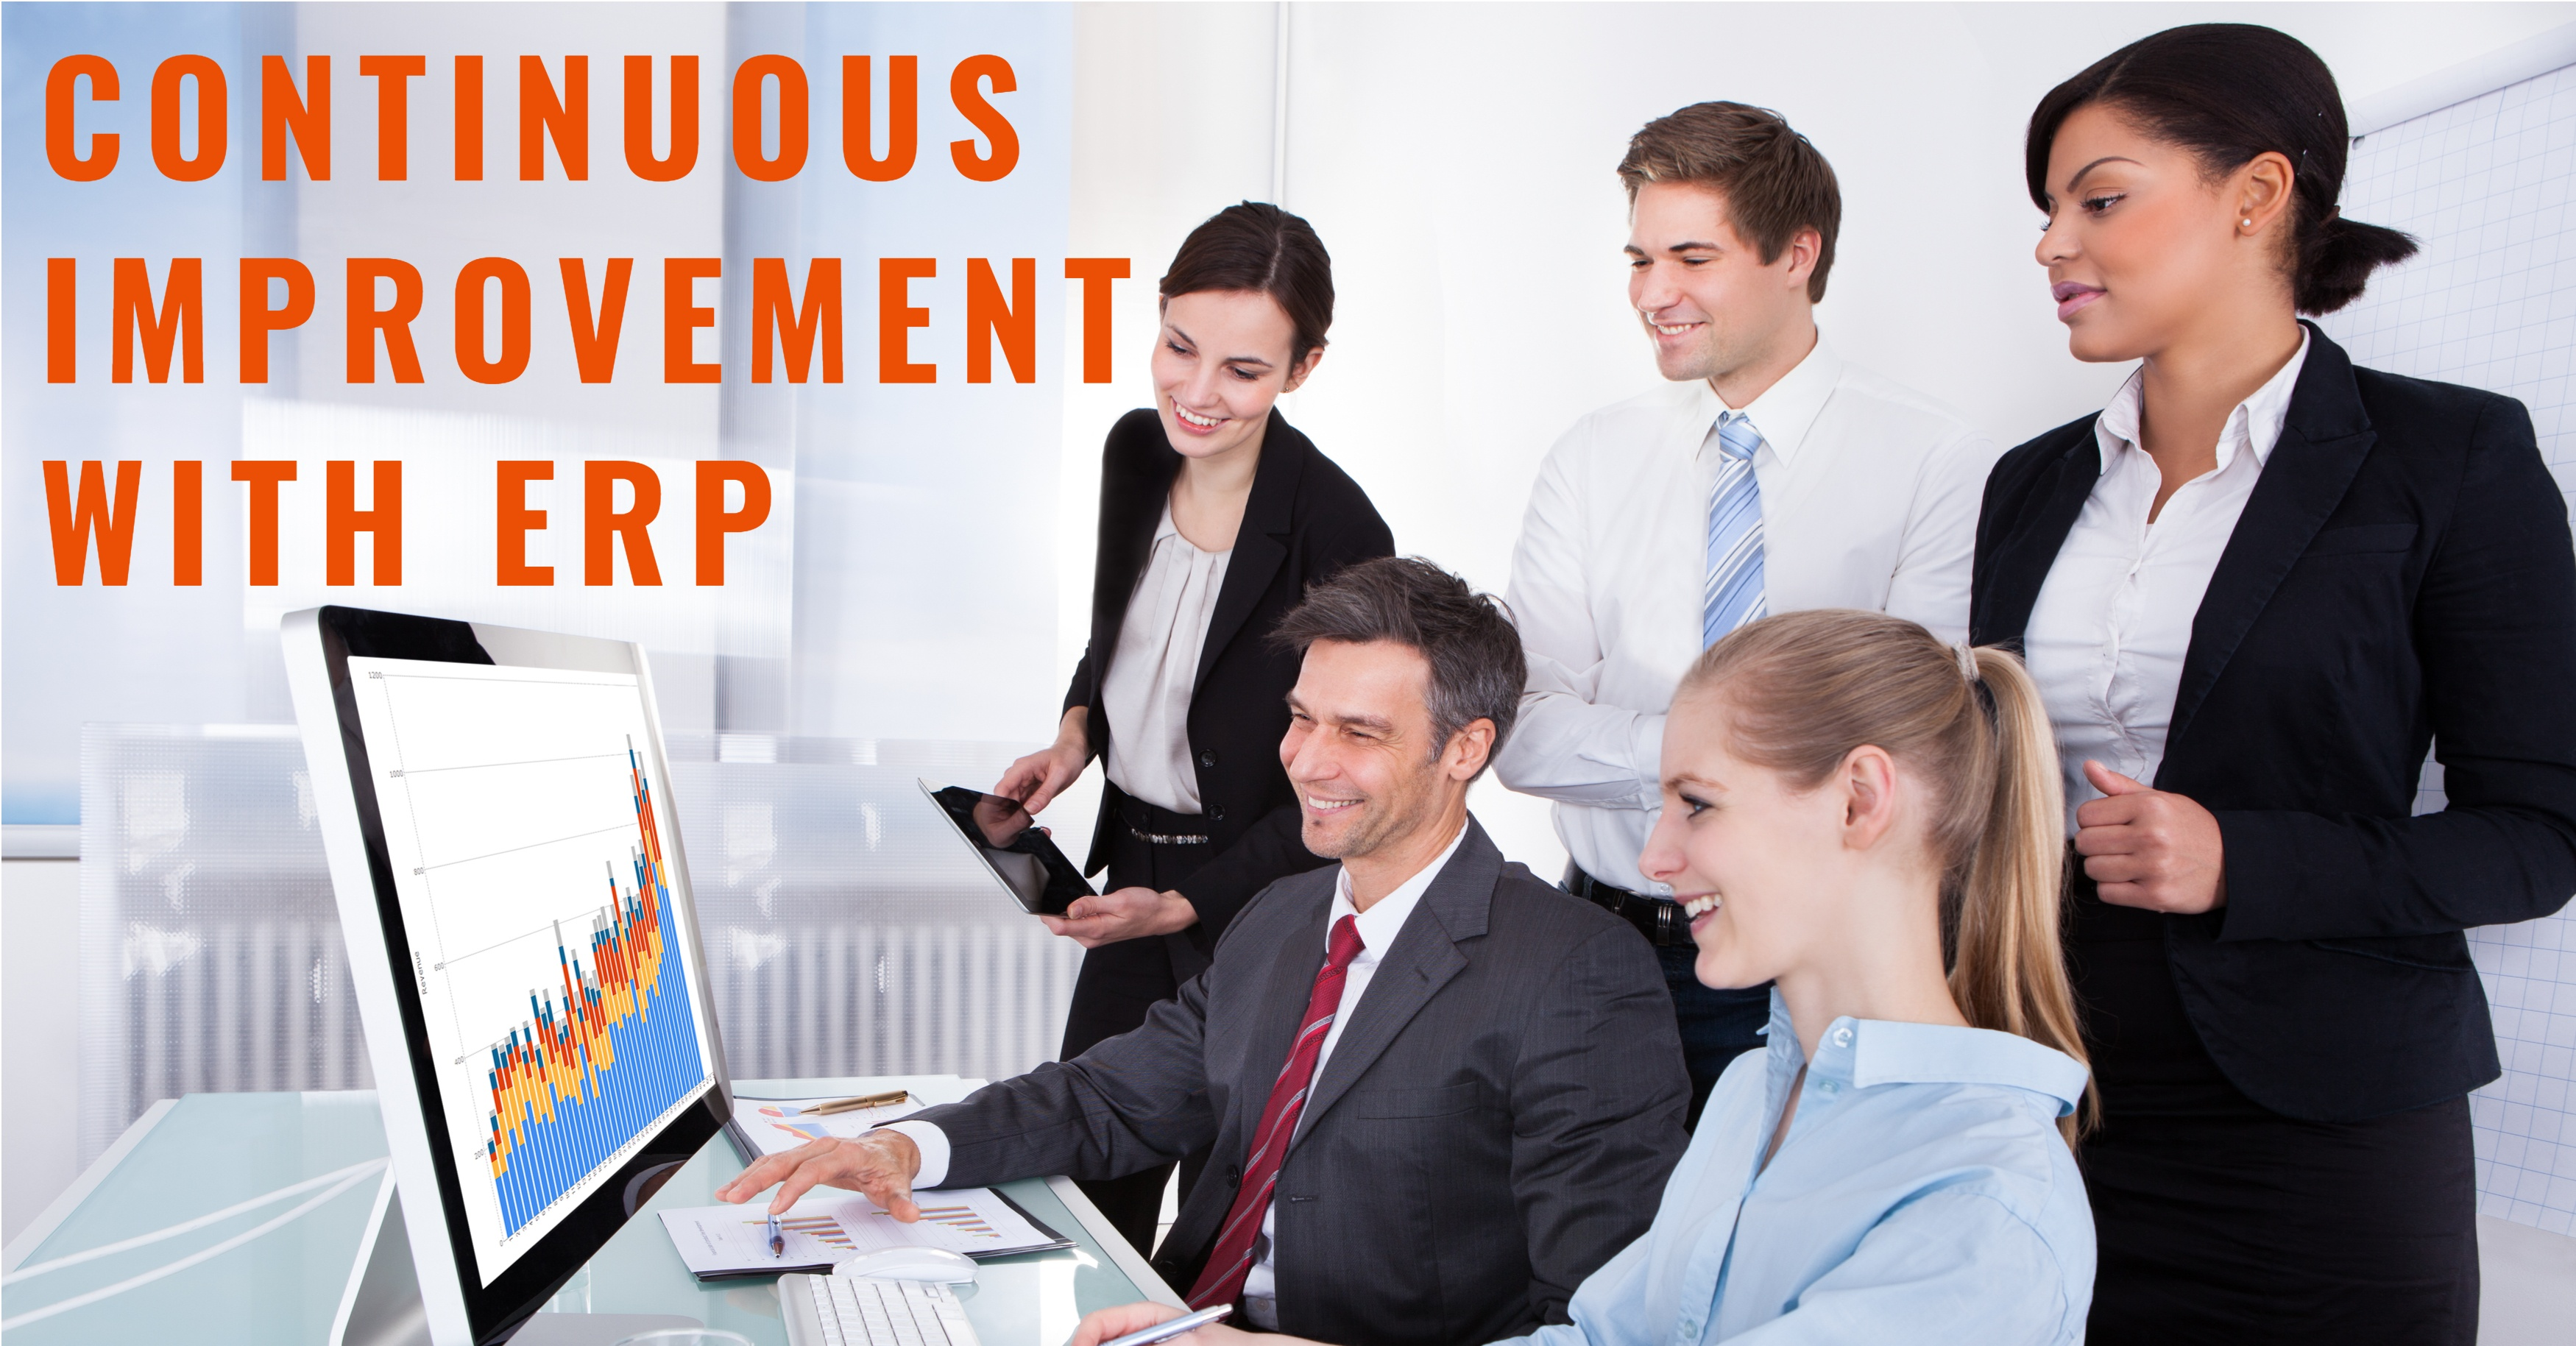 Pursue Continuous Improvement with ERP